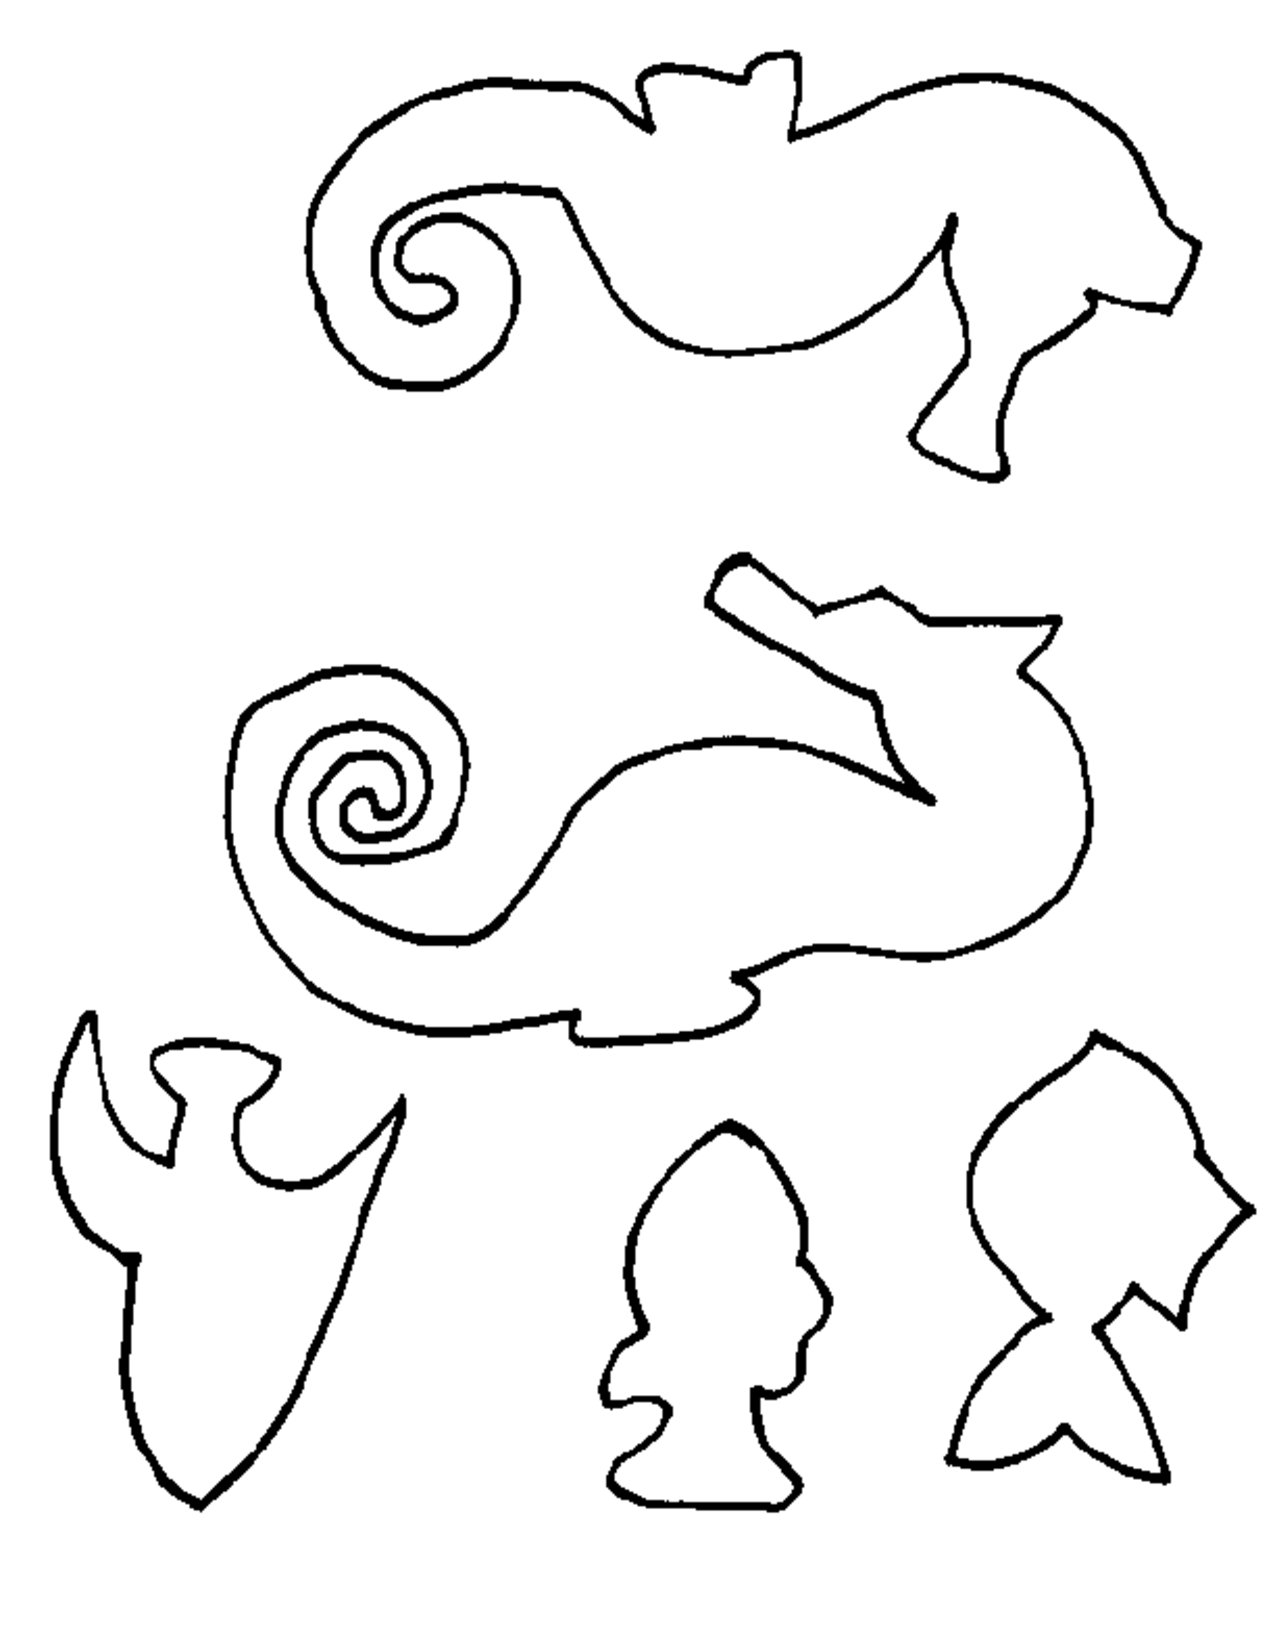 Seahorse Template